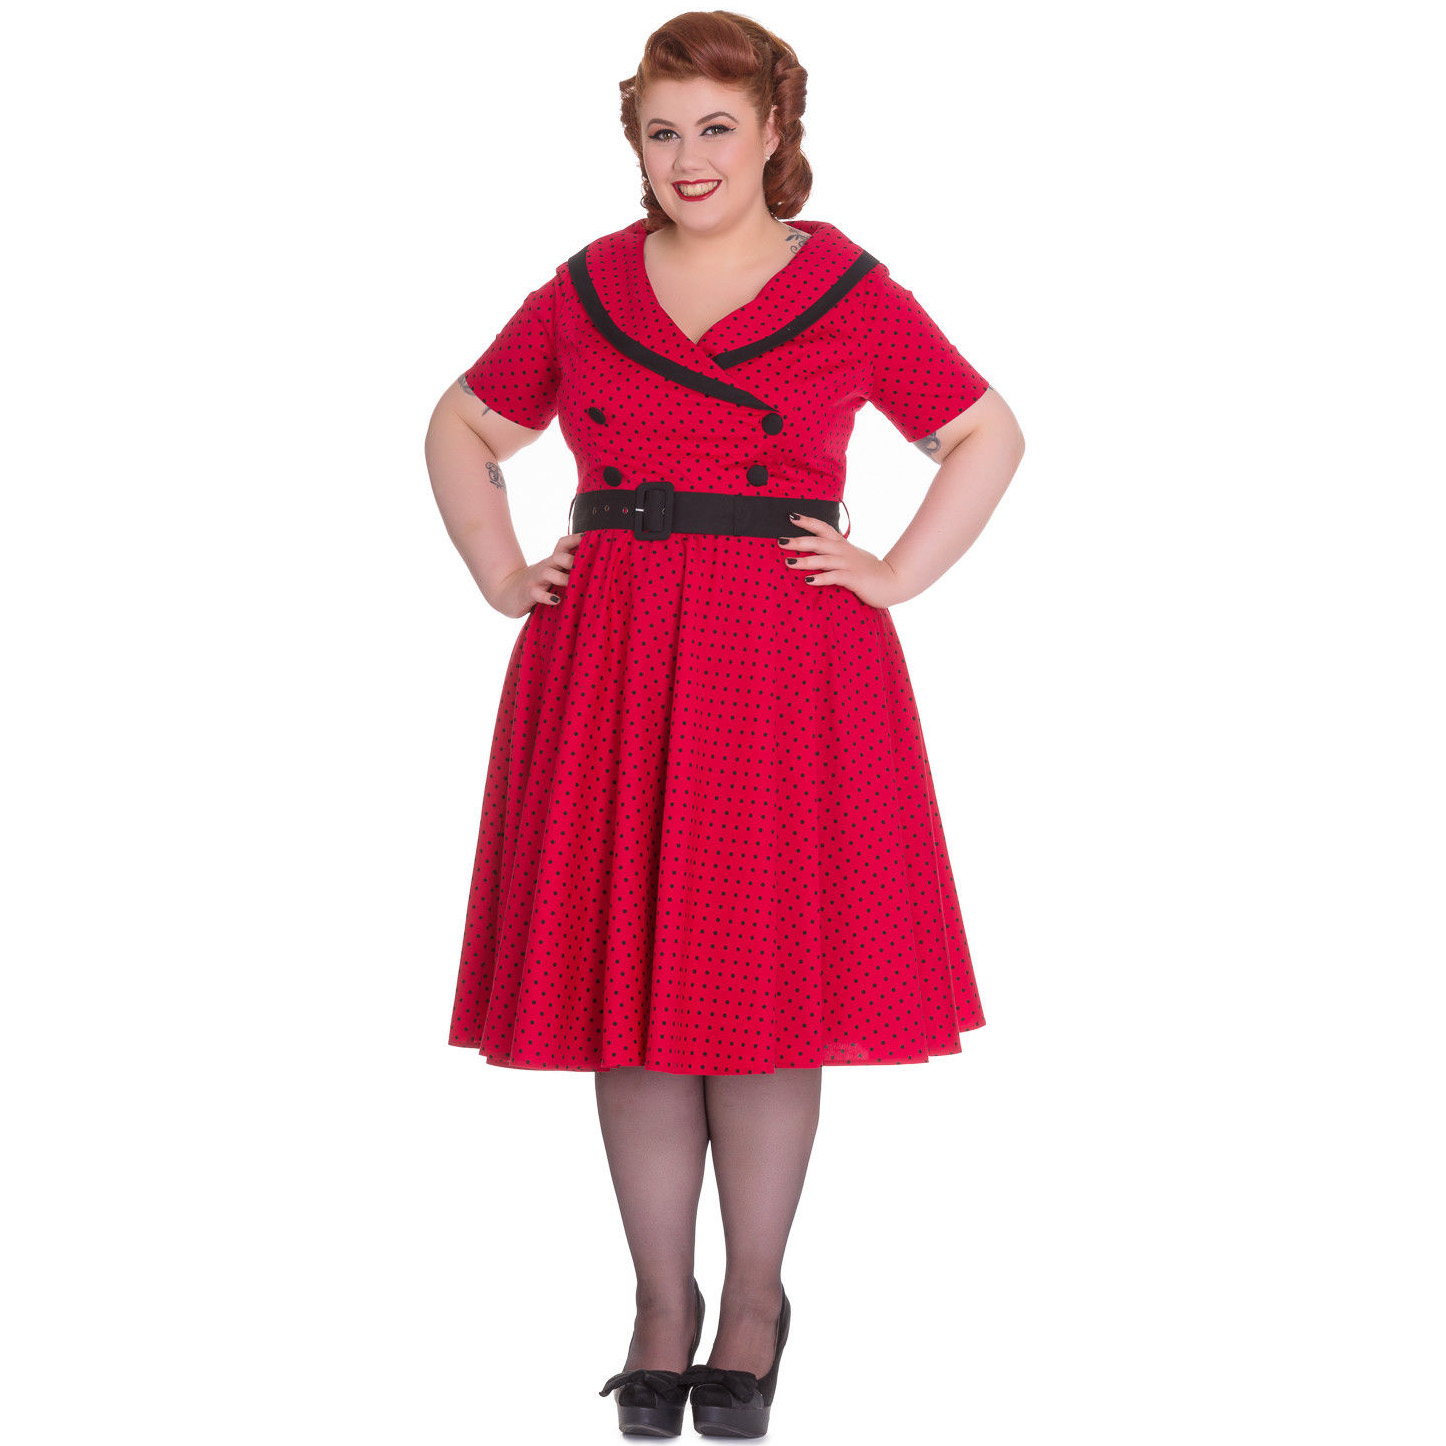 Hell-Bunny-40s-50s-Pin-Up-Swing-Dress-MIMI-Polka-Dot-Black-Red-All-Sizes thumbnail 11